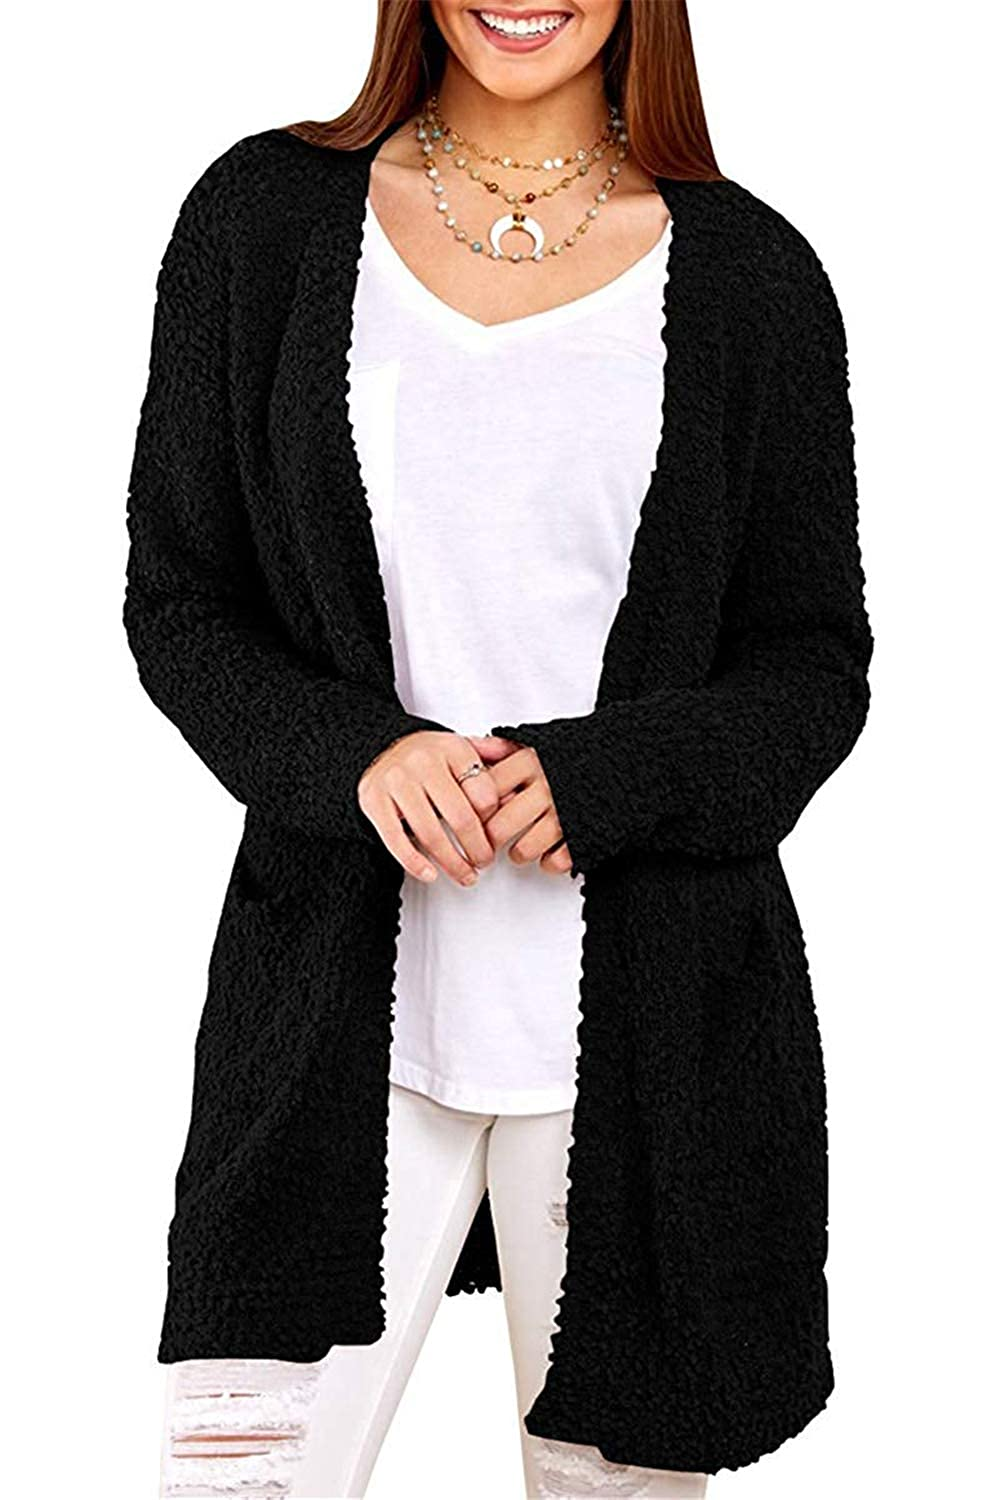 Y Black Cloudless Womens Long Hooded Cardigans Fall Pockets Knit Plain Sweaters Outwear